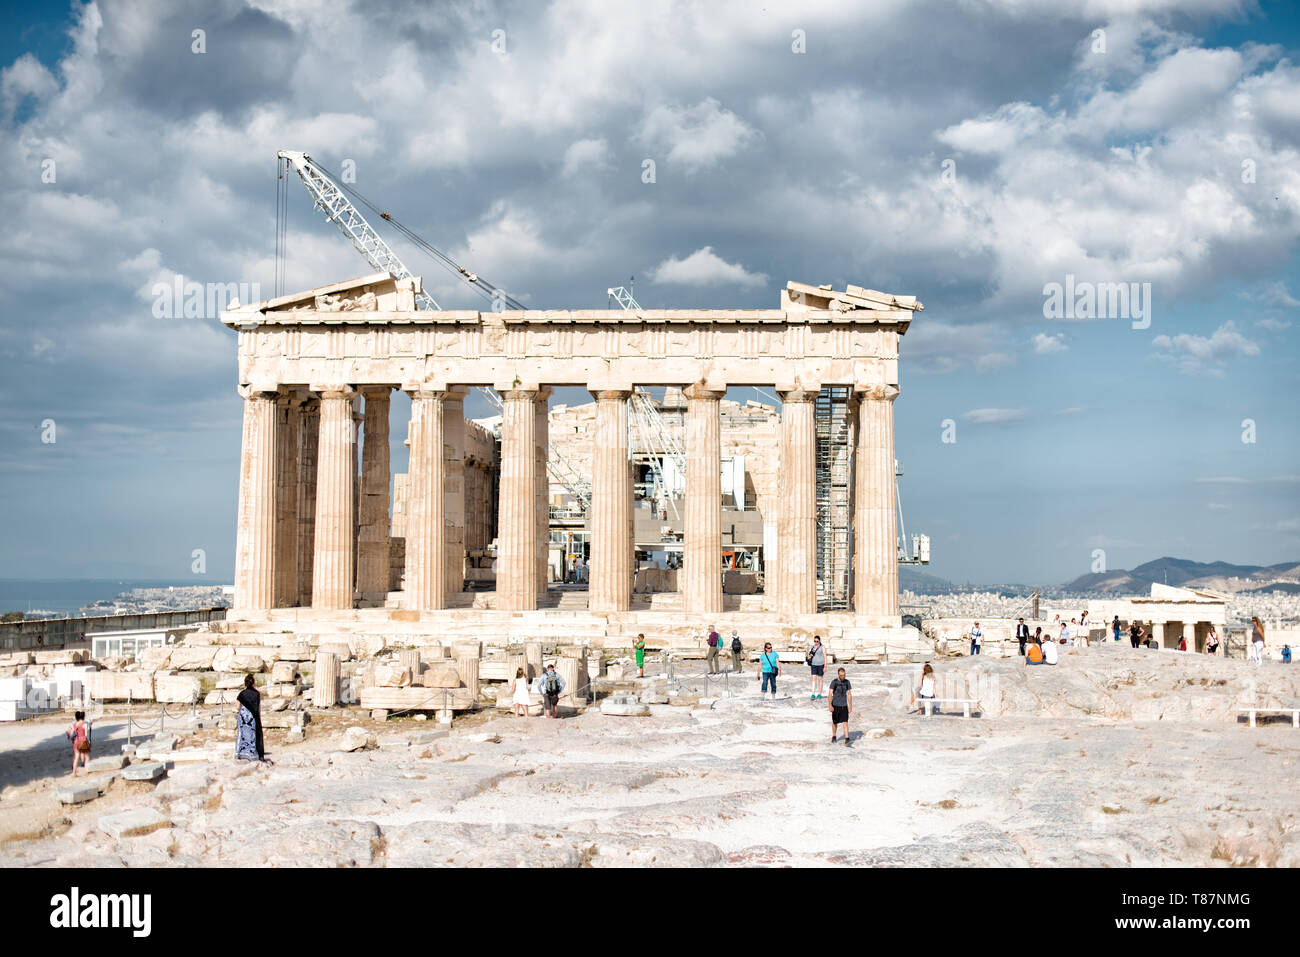 The Acropolis of Athens is an ancient citadel standing on a rocky outcrop above Athens, Greece. It is one of the most famous archeological sites in th Stock Photo